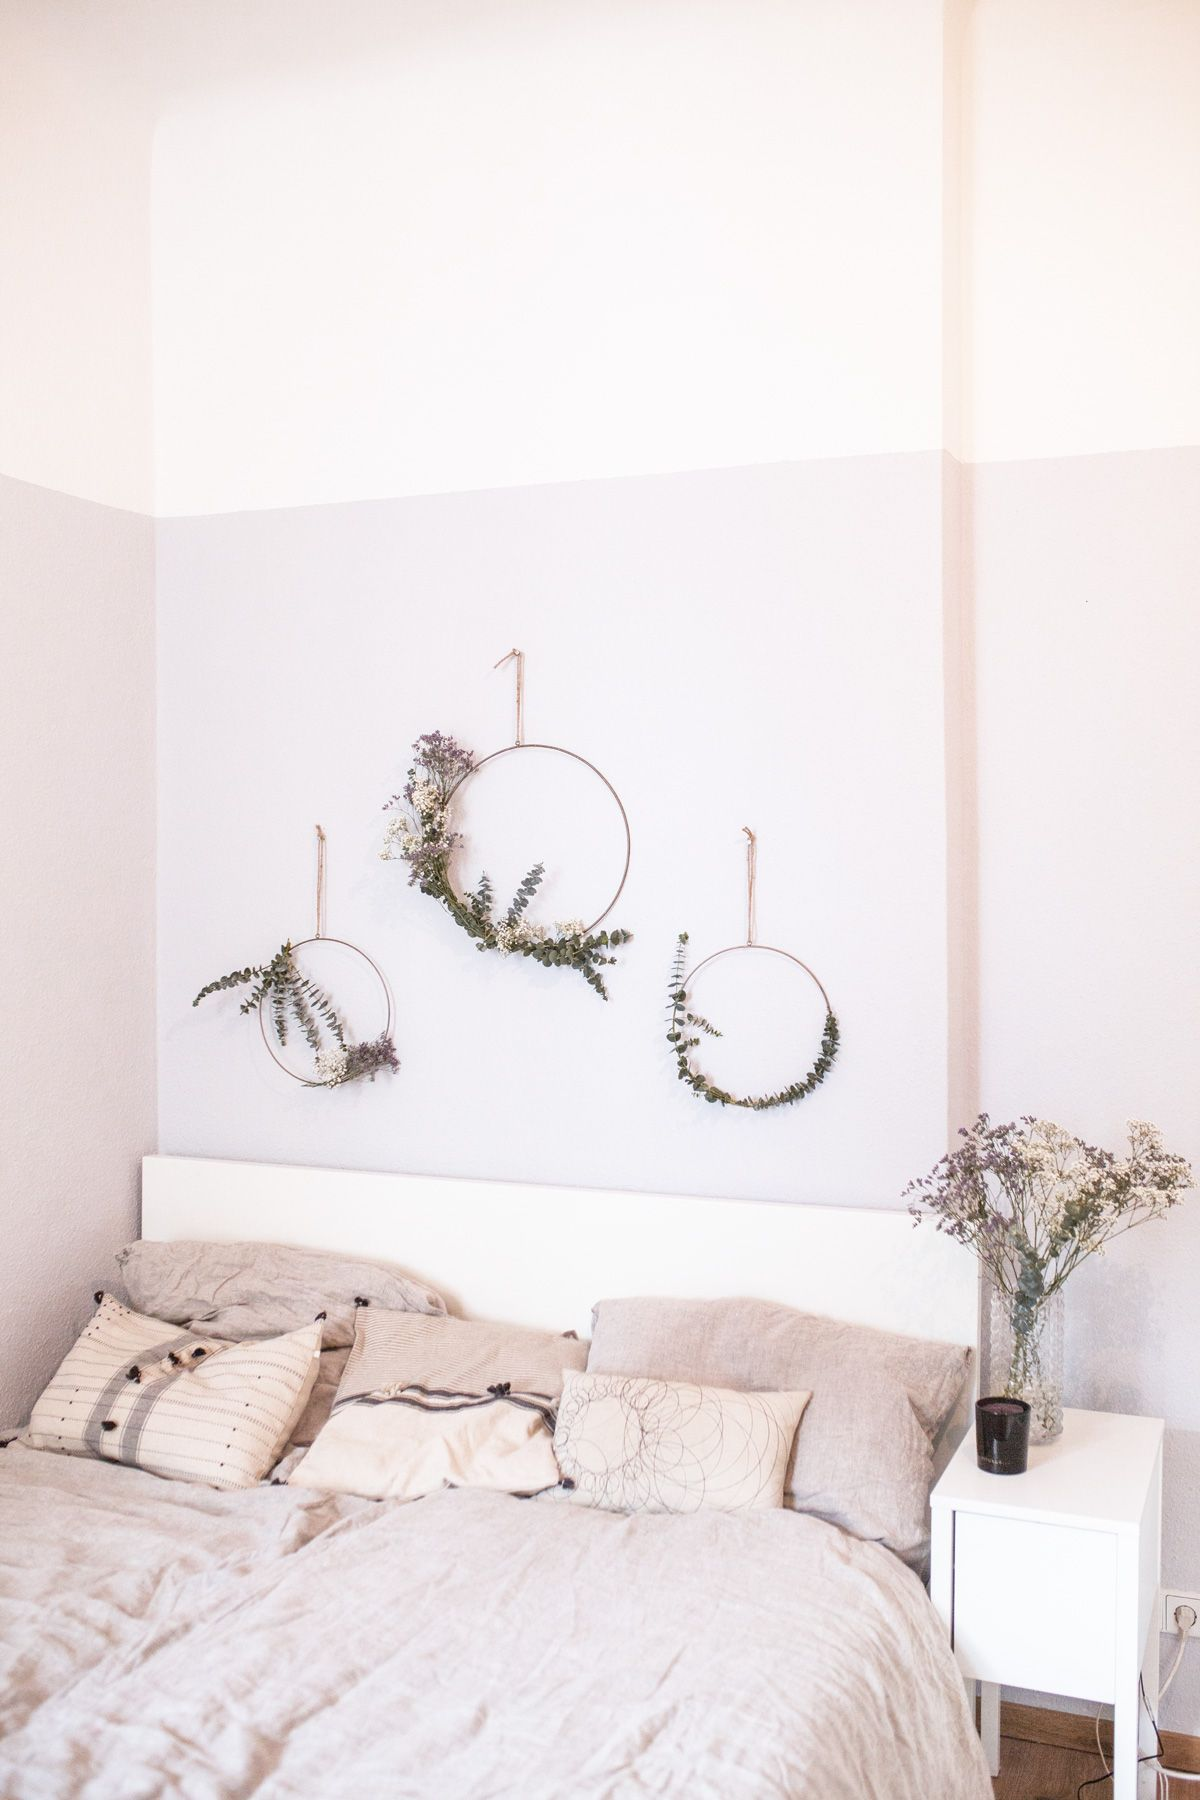 Diy Schlafzimmer Einrichten Diy Eukalyptus Kranz The Art Of Home Diy Deko